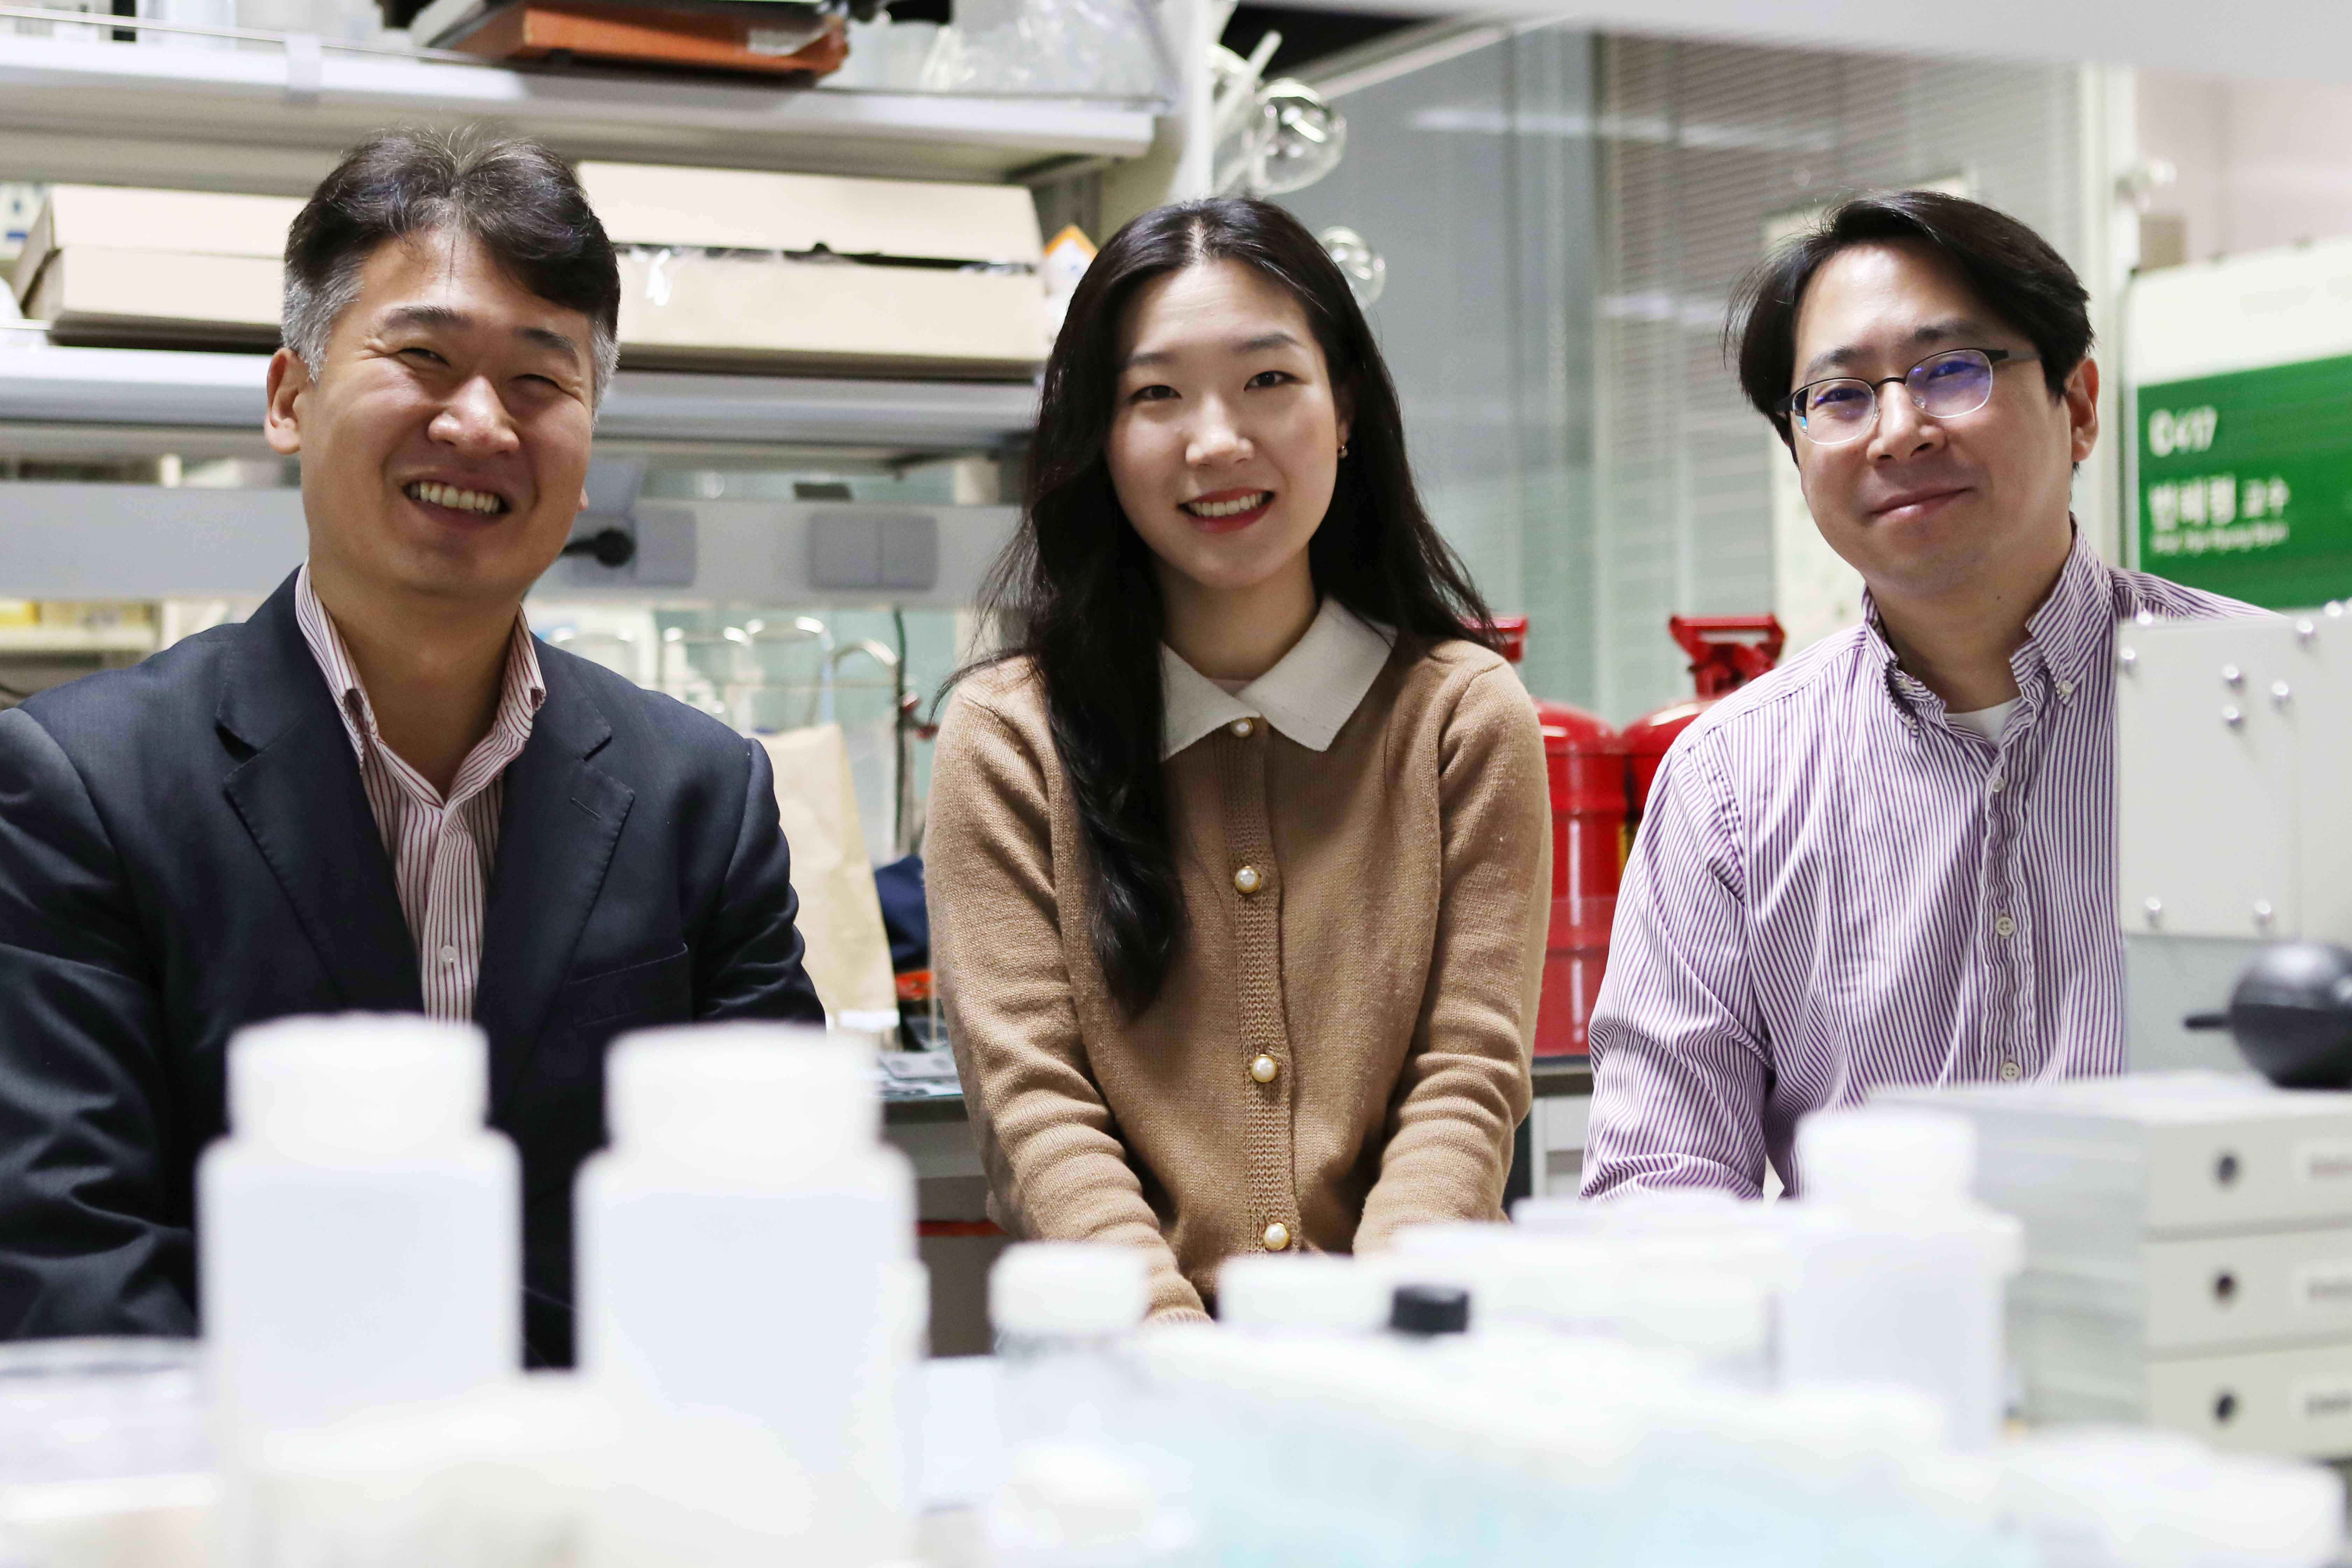 Professor Seokwoo Jeon (left), Ph.D. Candidate Gayea Hyun (center), Professor Jihun Oh (right)